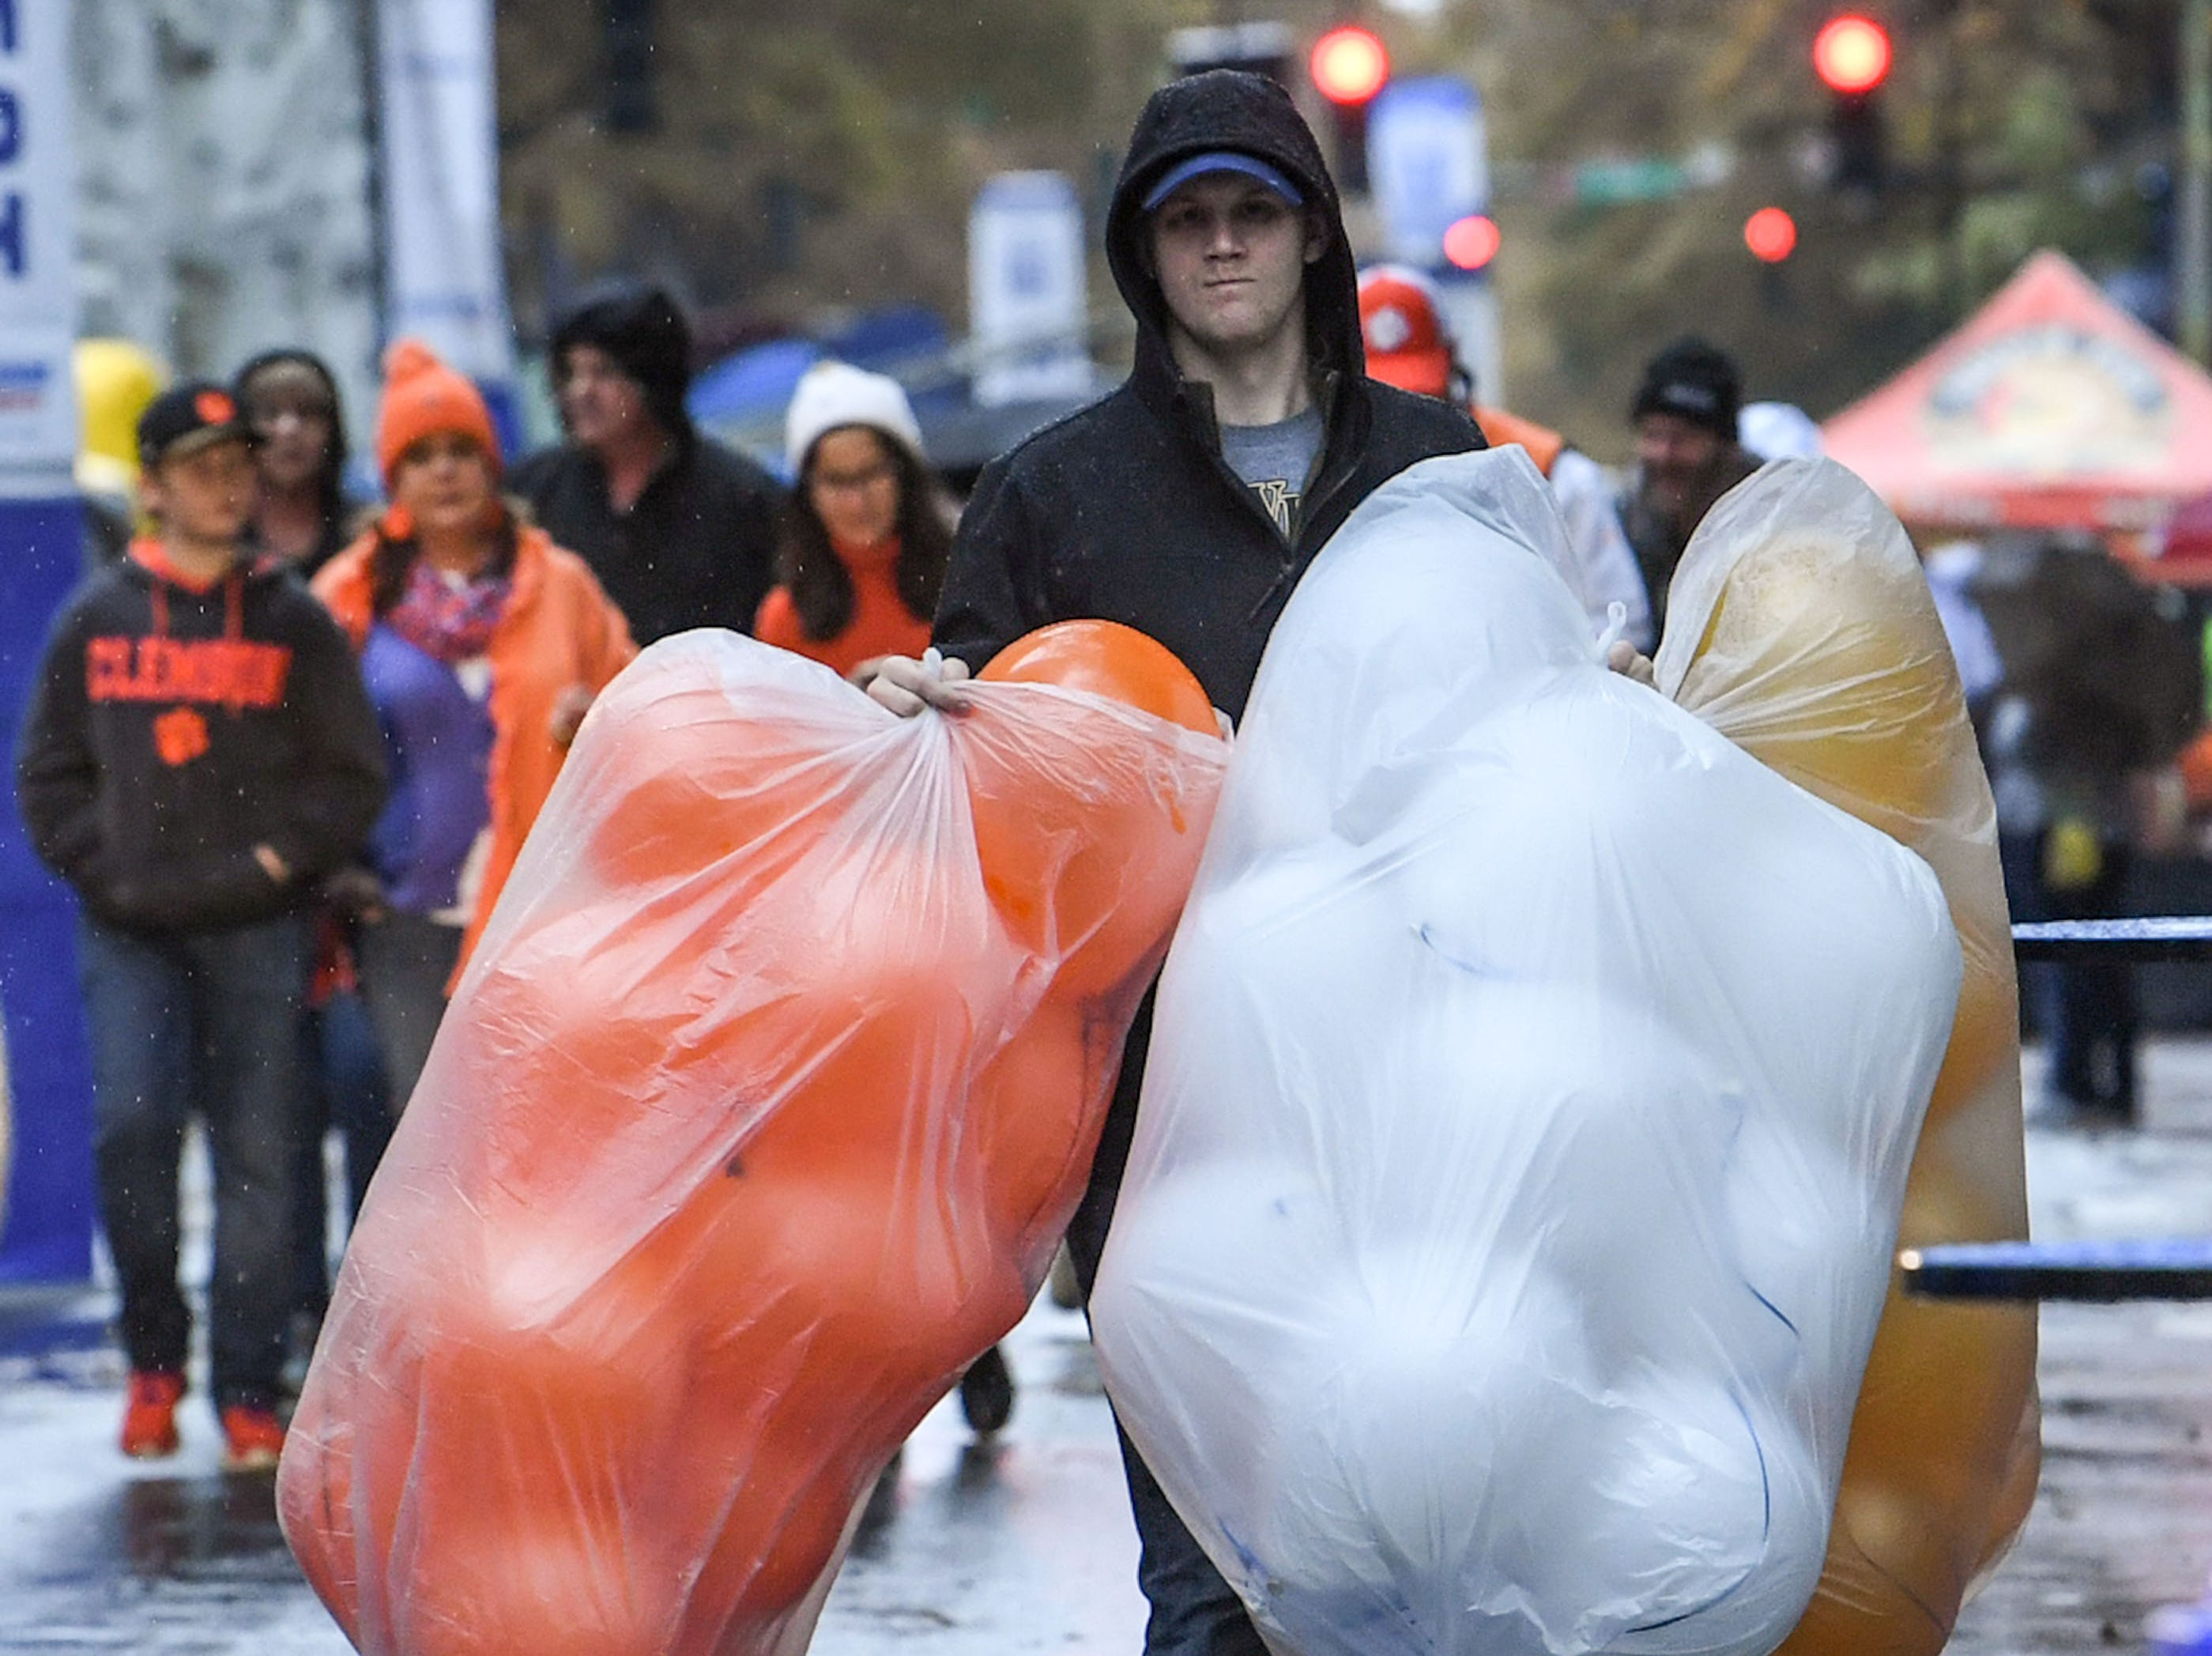 Josh Strickland carries balloons representing Clemson and Pitt for a hospitality booth at the ACC Fan Fest in downtown Charlotte on Saturday, December 1, 2018.